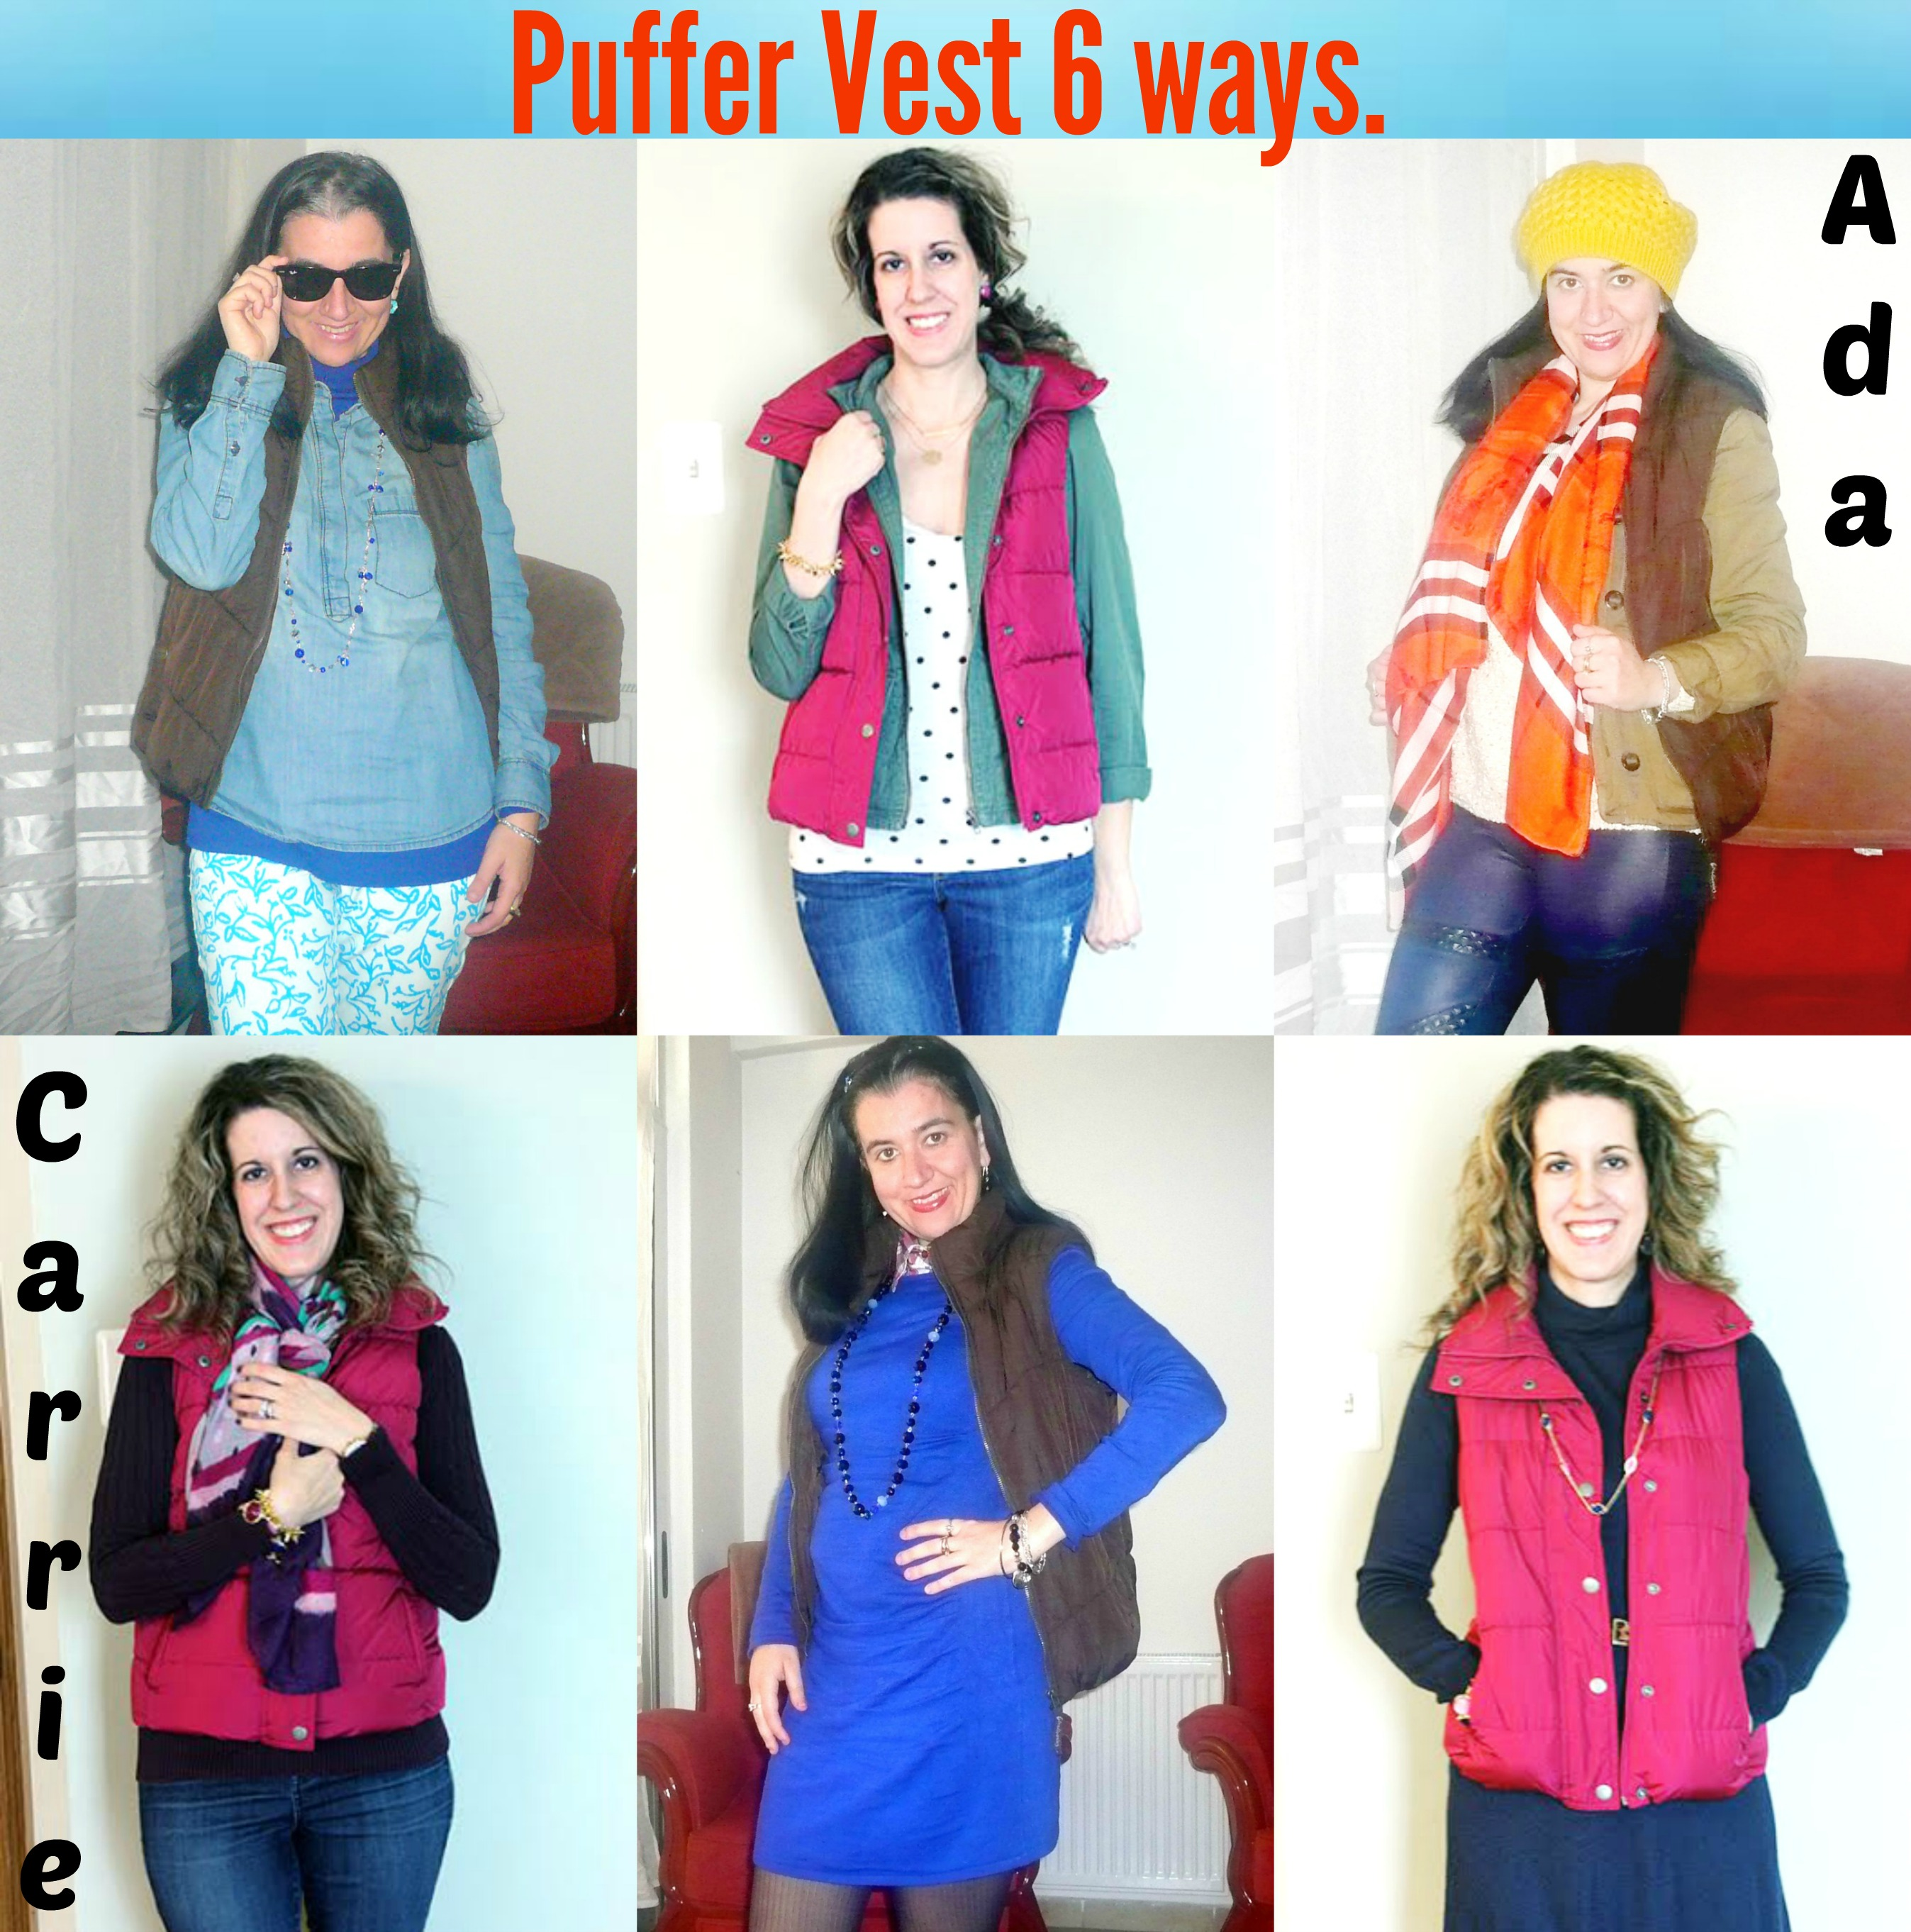 Puffer Vest 6-way Collage